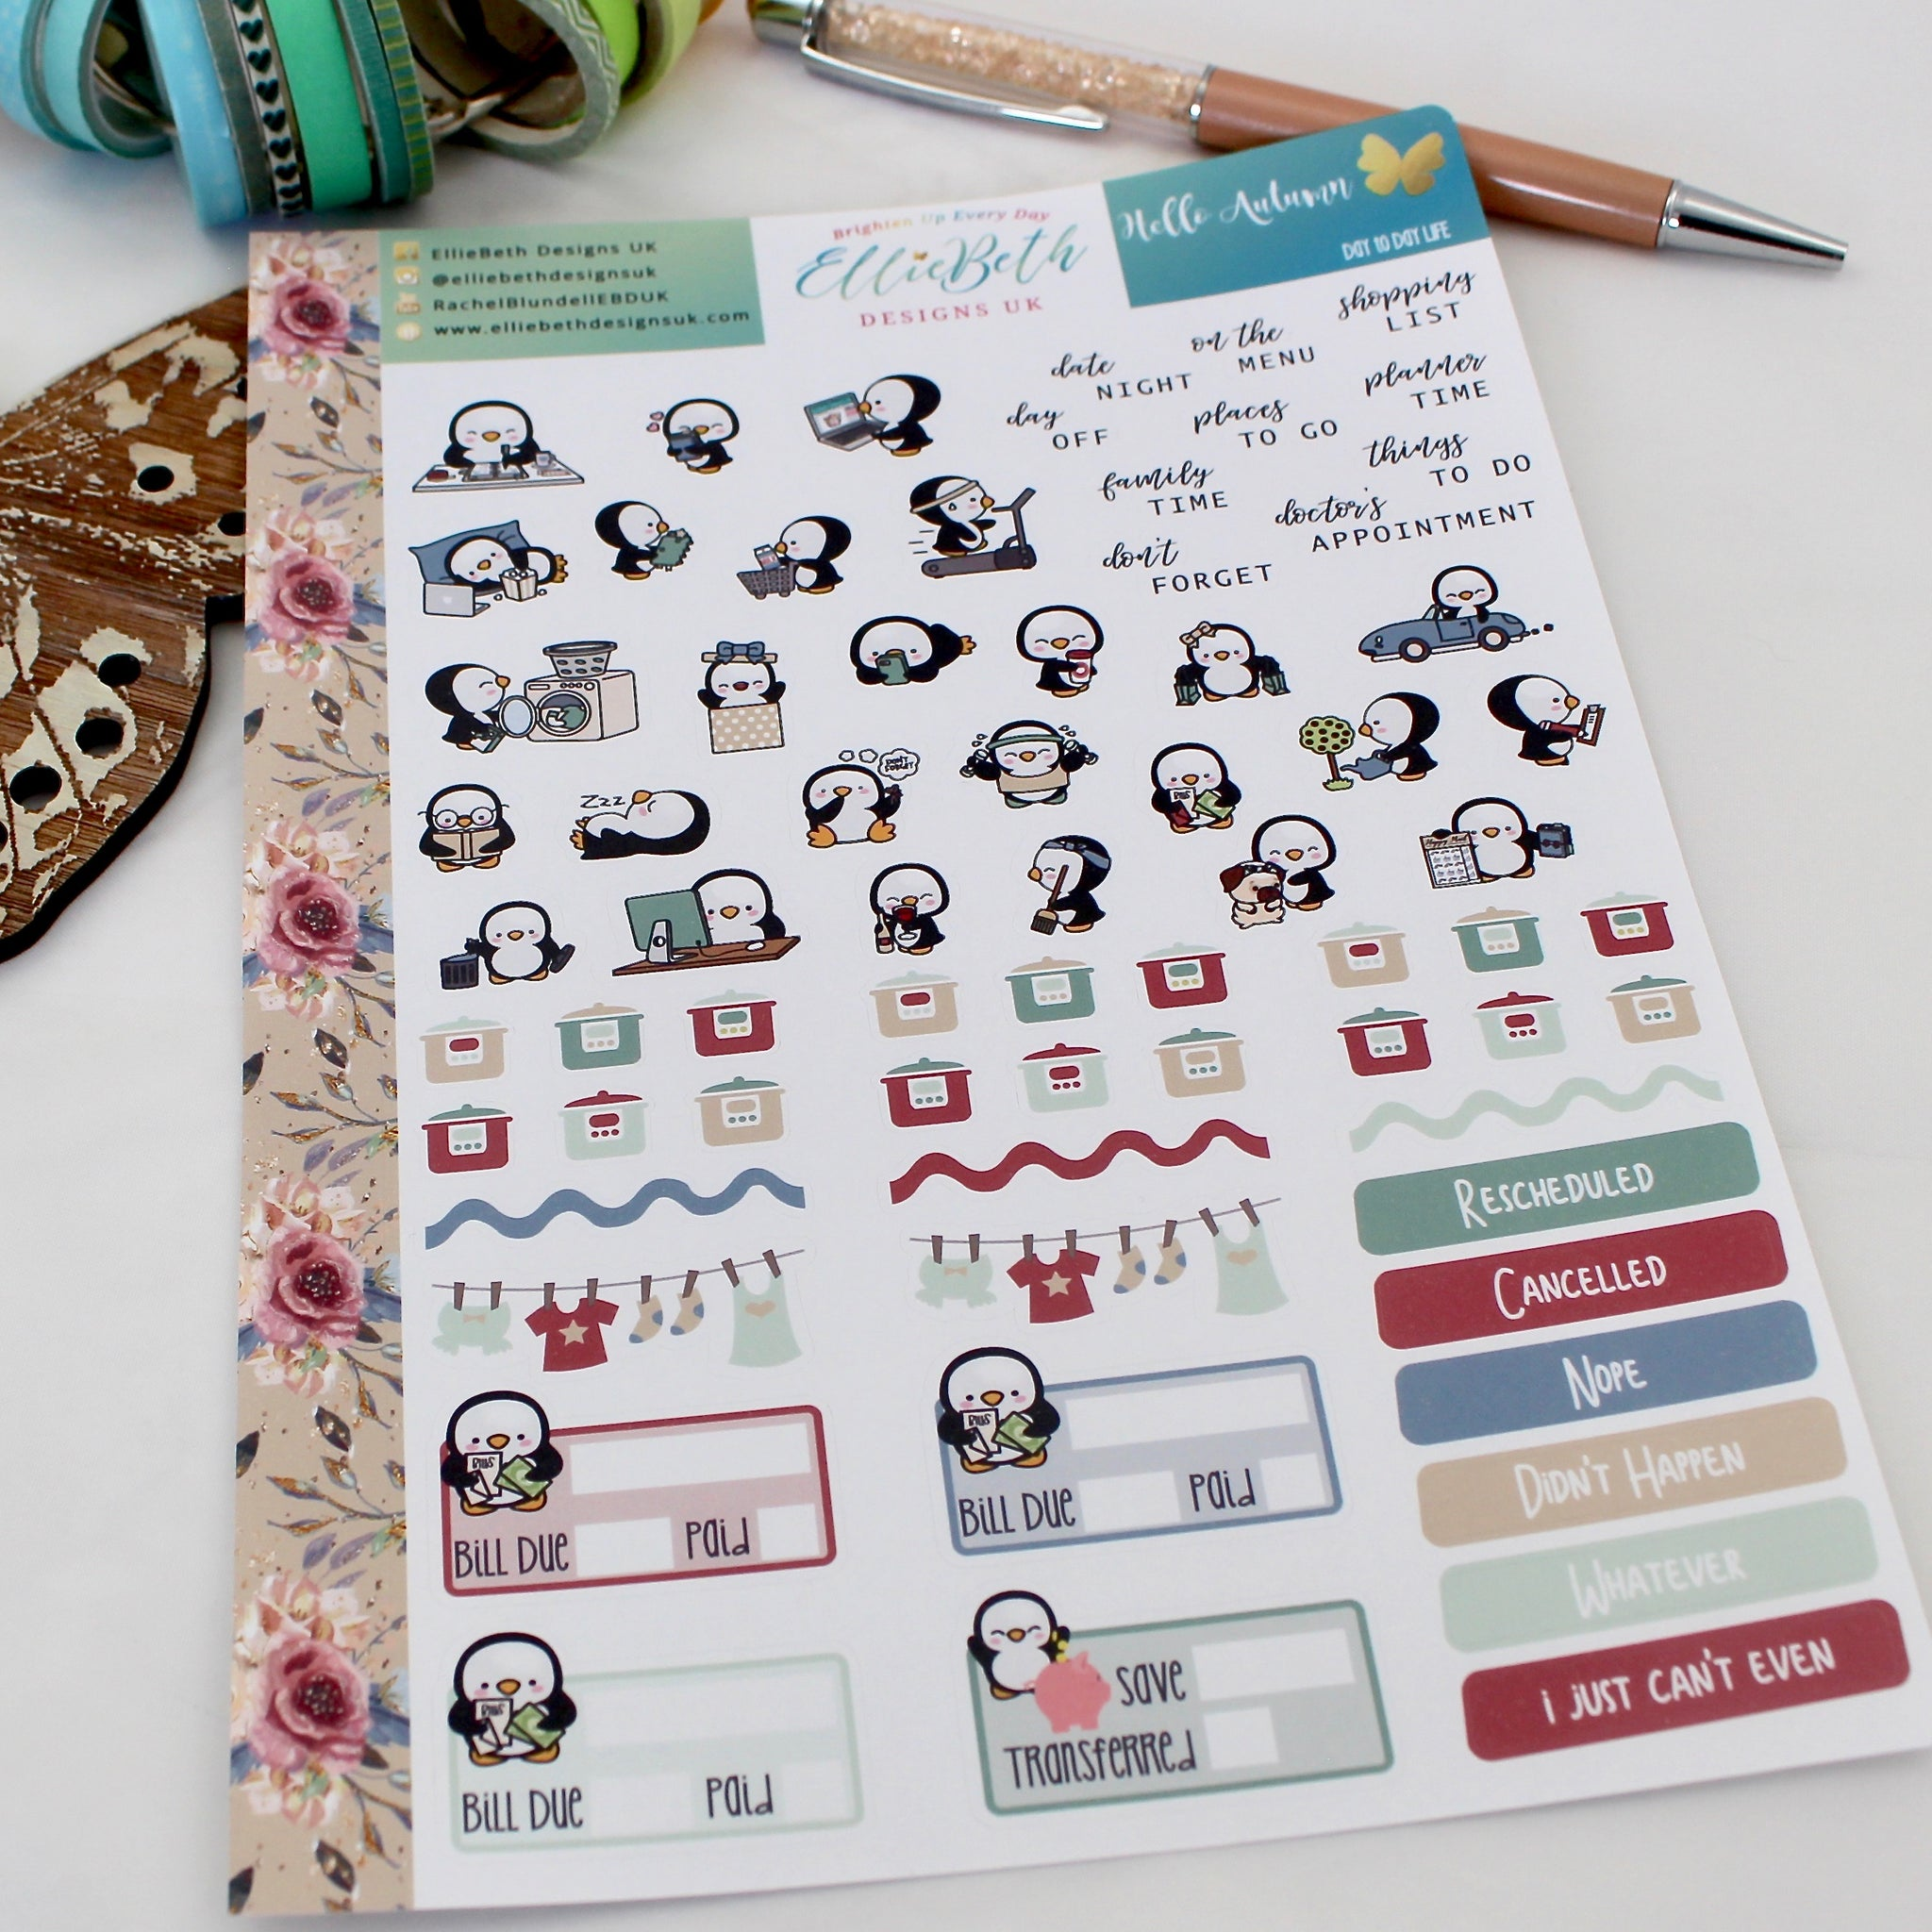 'Hello Autumn' - Day to Day LIFE - A5 binder ready planner stickers